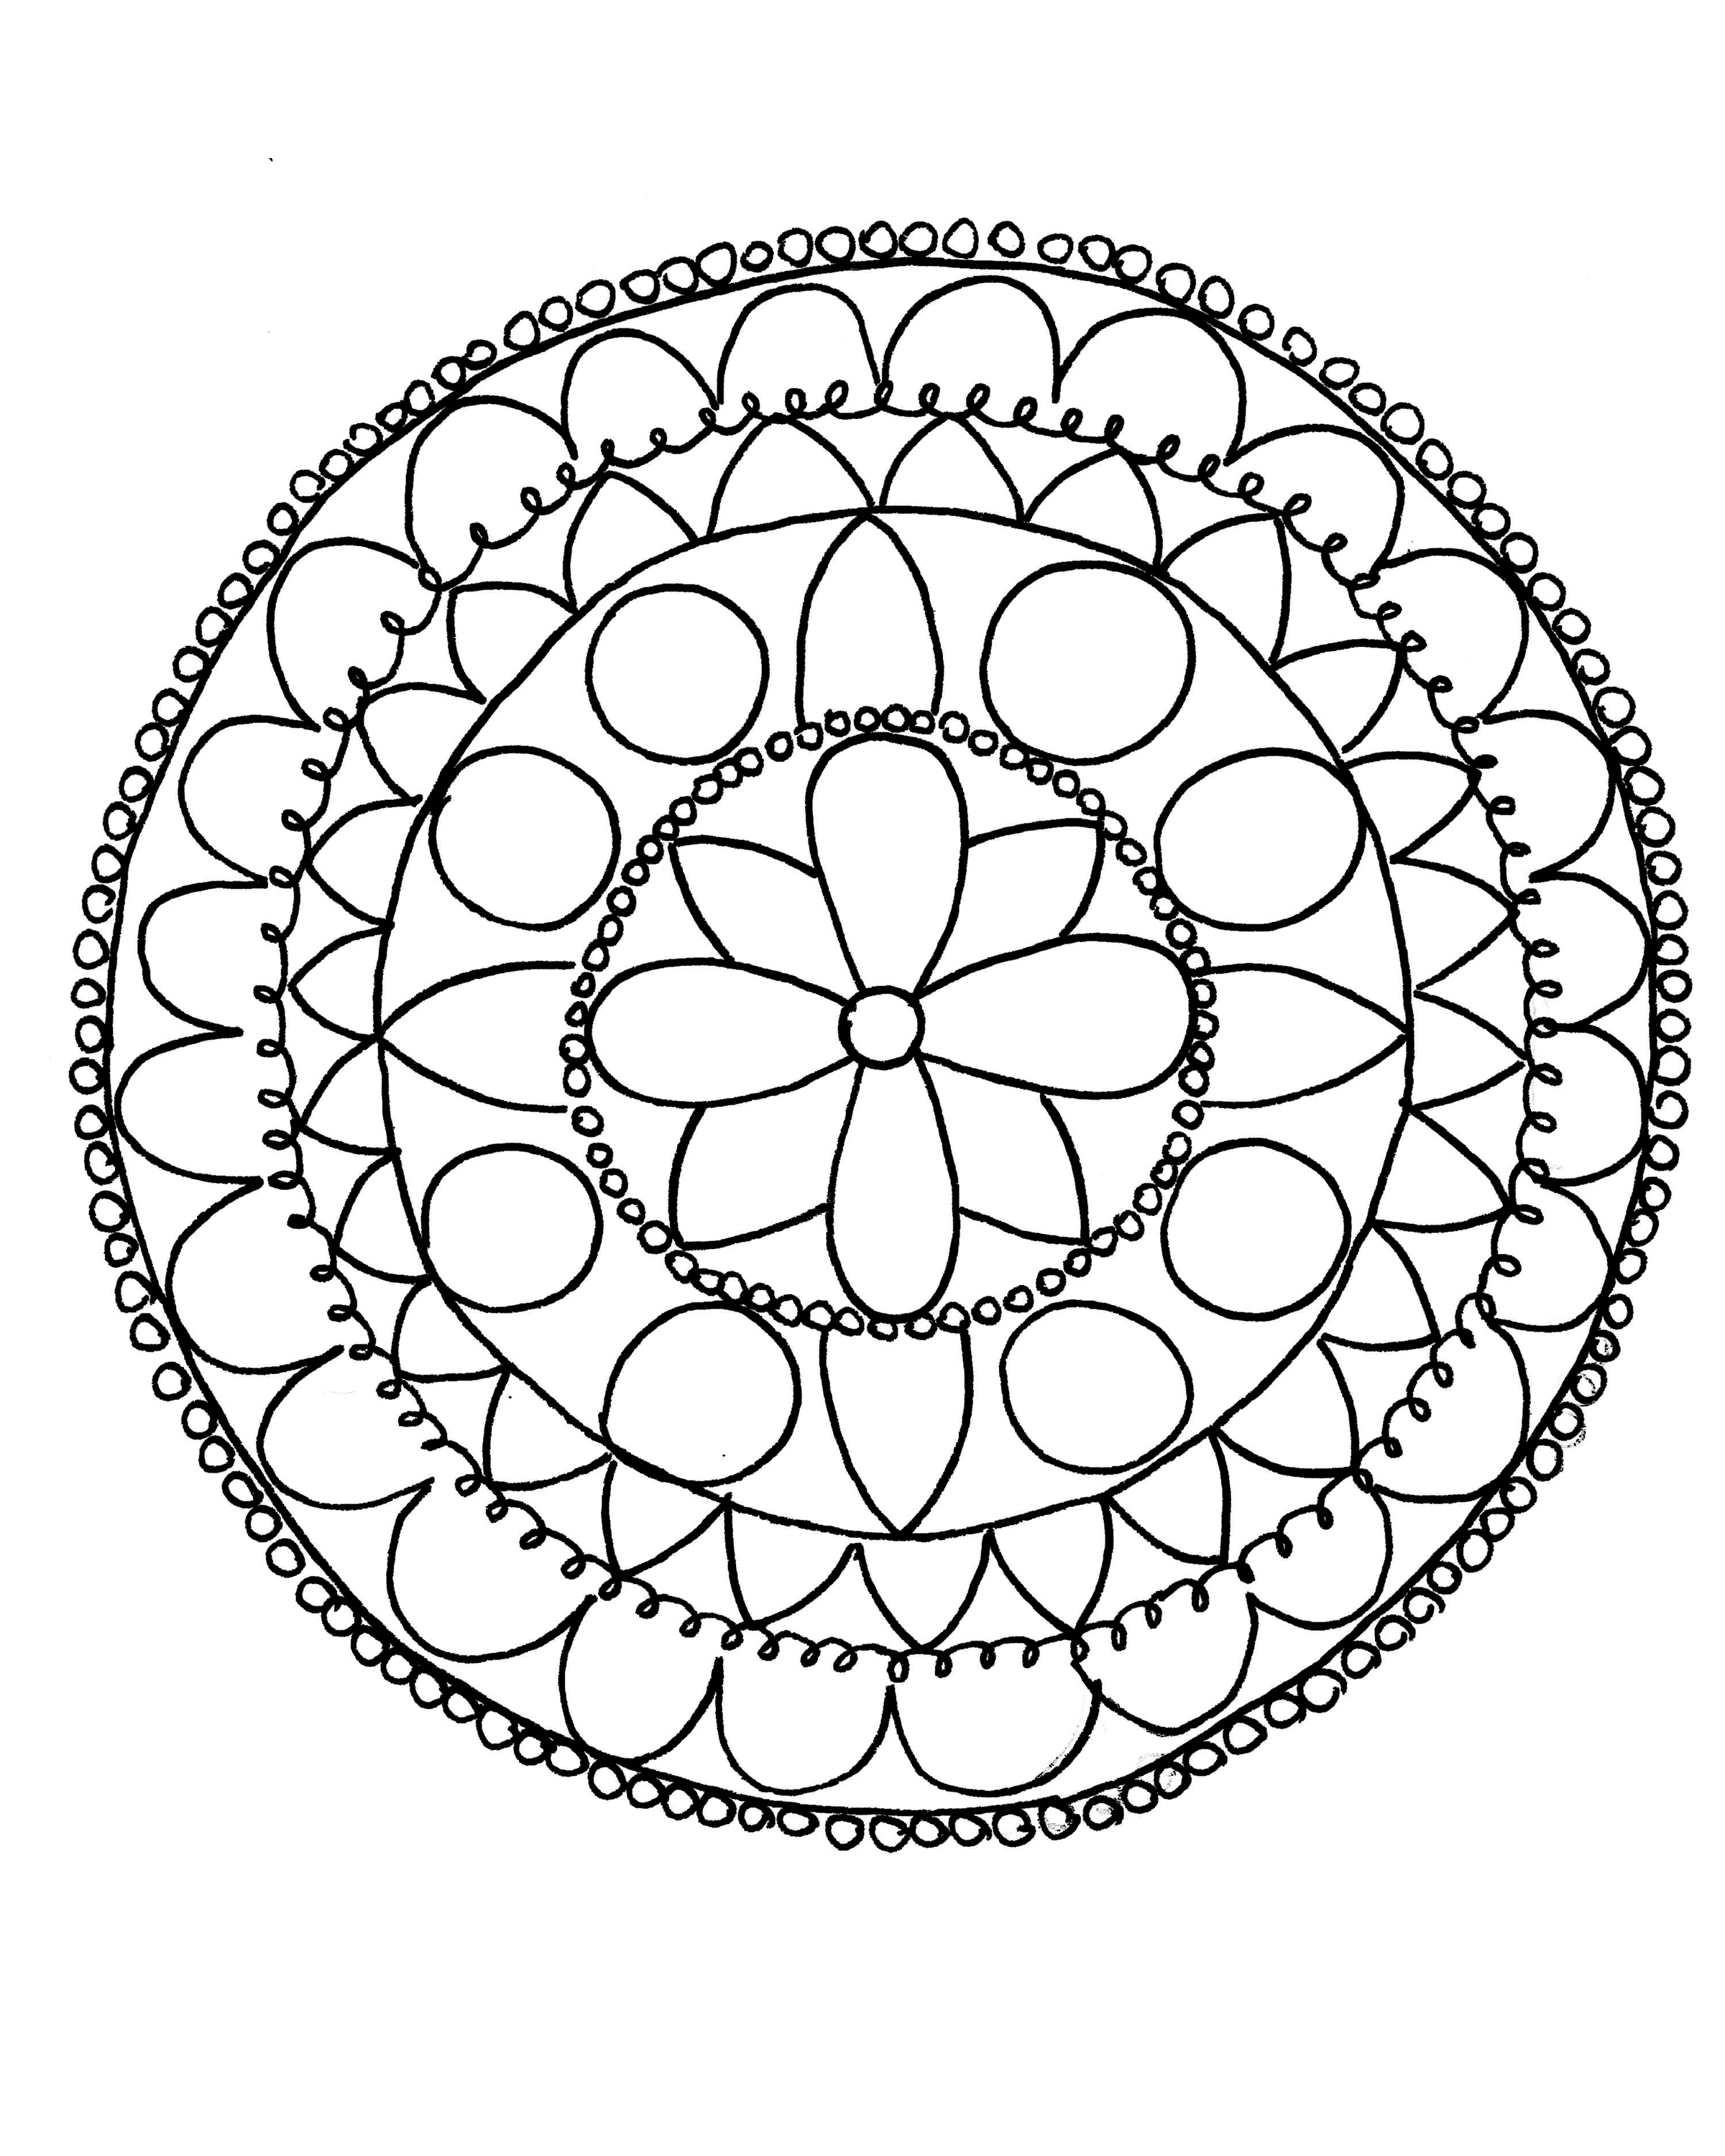 2400x3000 How To Draw A Mandala (With Free Coloring Pages!)